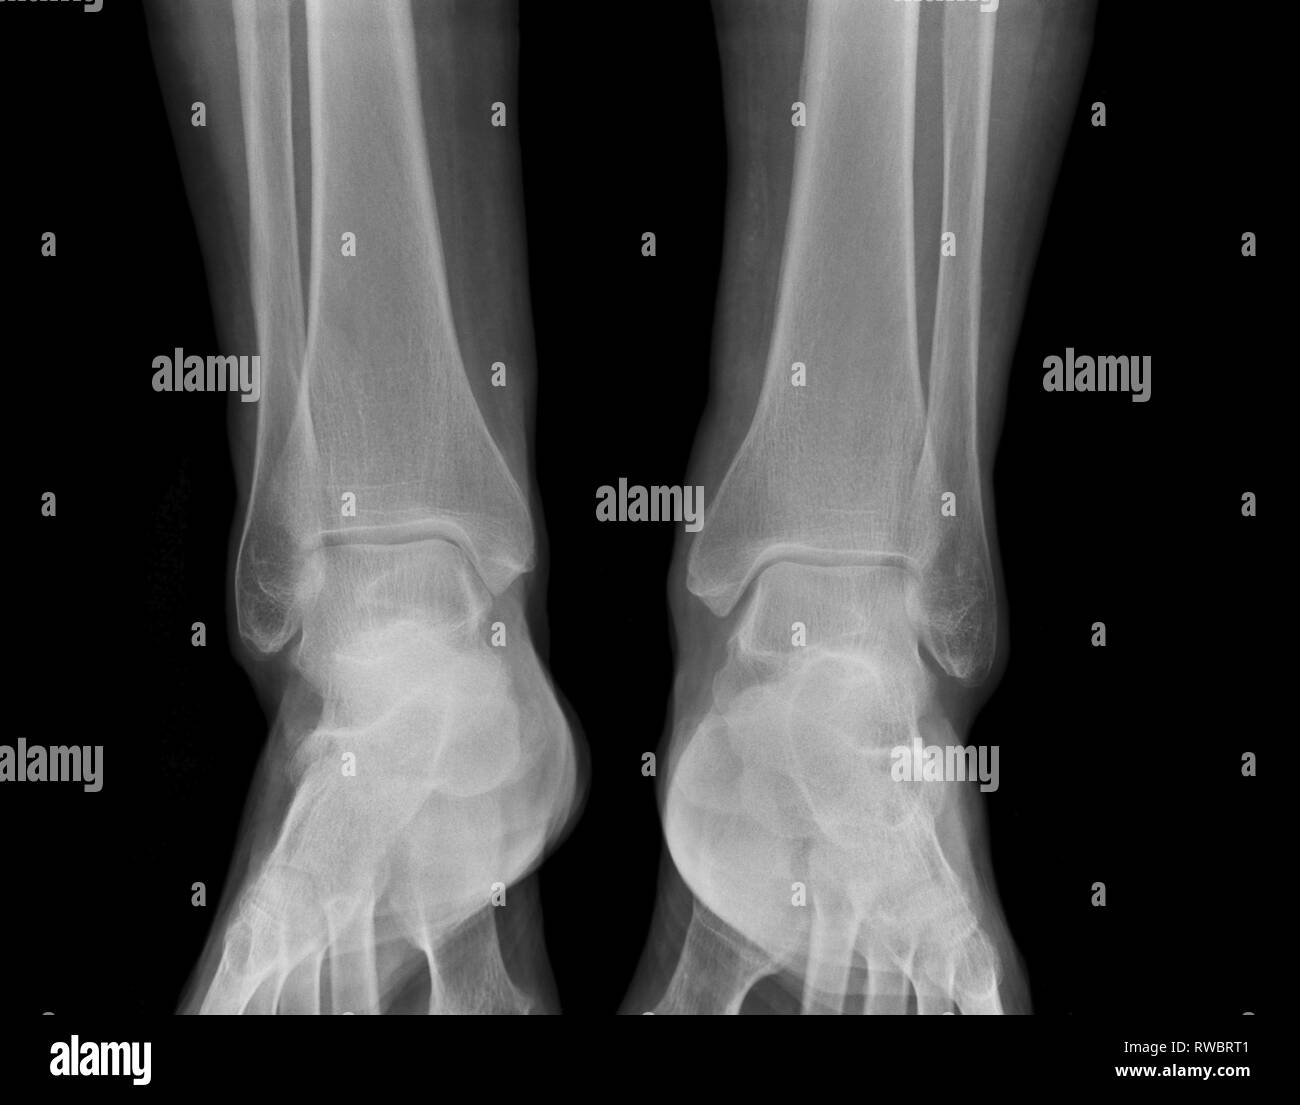 X-ray medical picture - Human feet - Stock Image